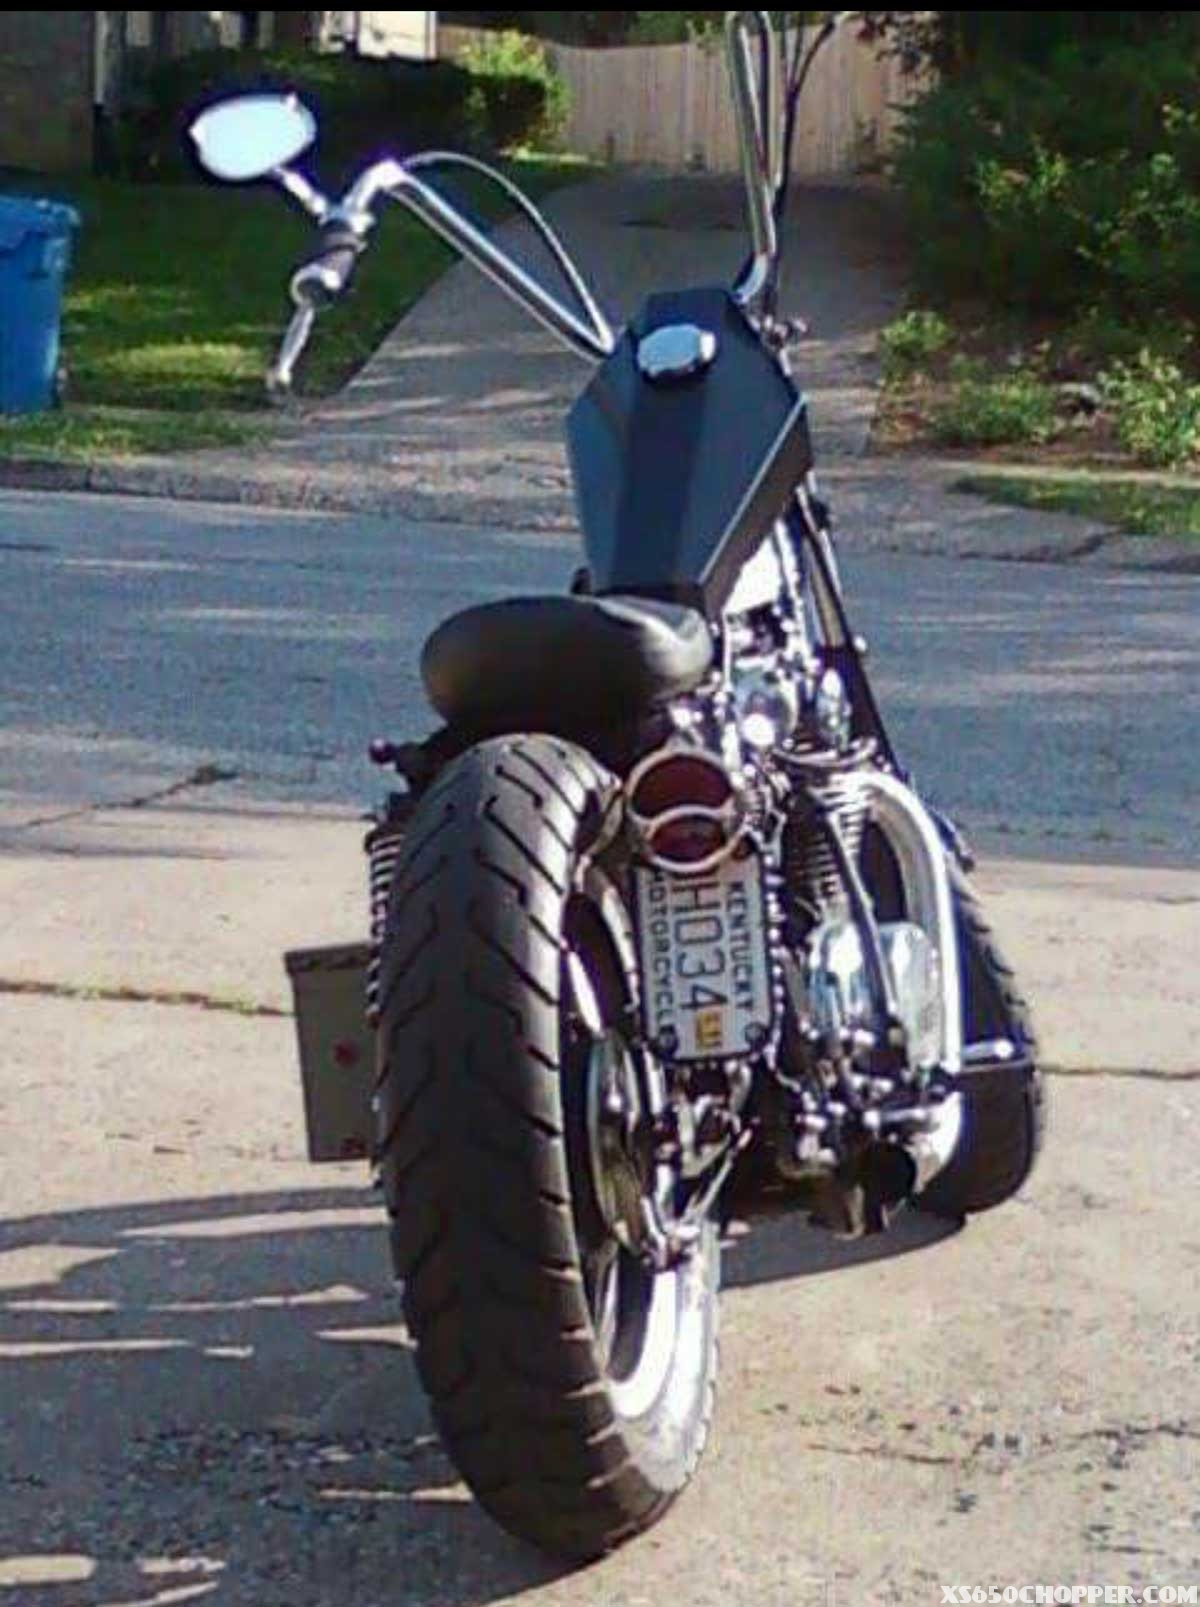 kentucky-xs650-1982-chopper-2